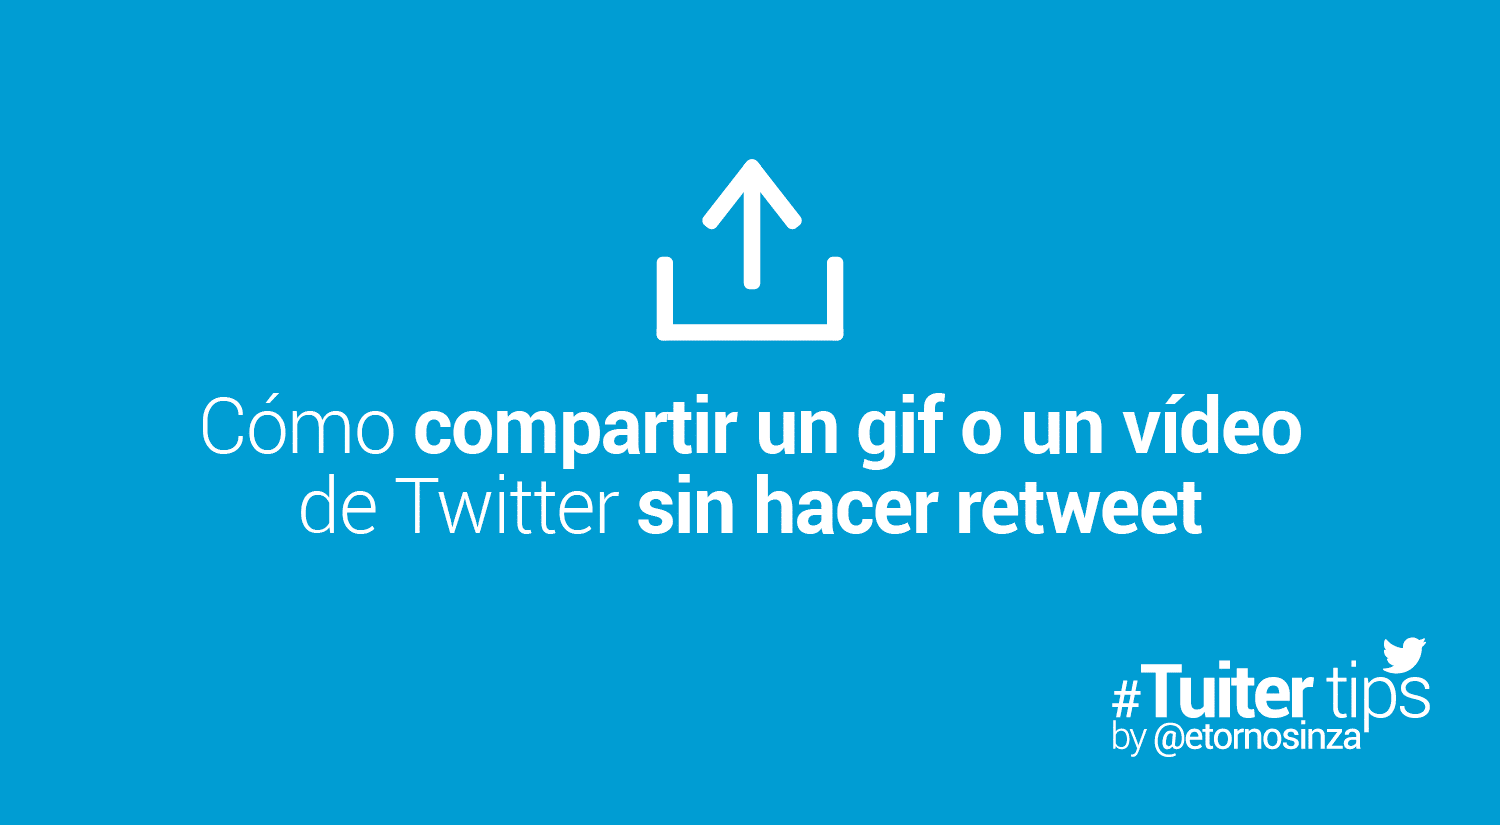 Cómo compartir video twitter iphone sin hacer retuit